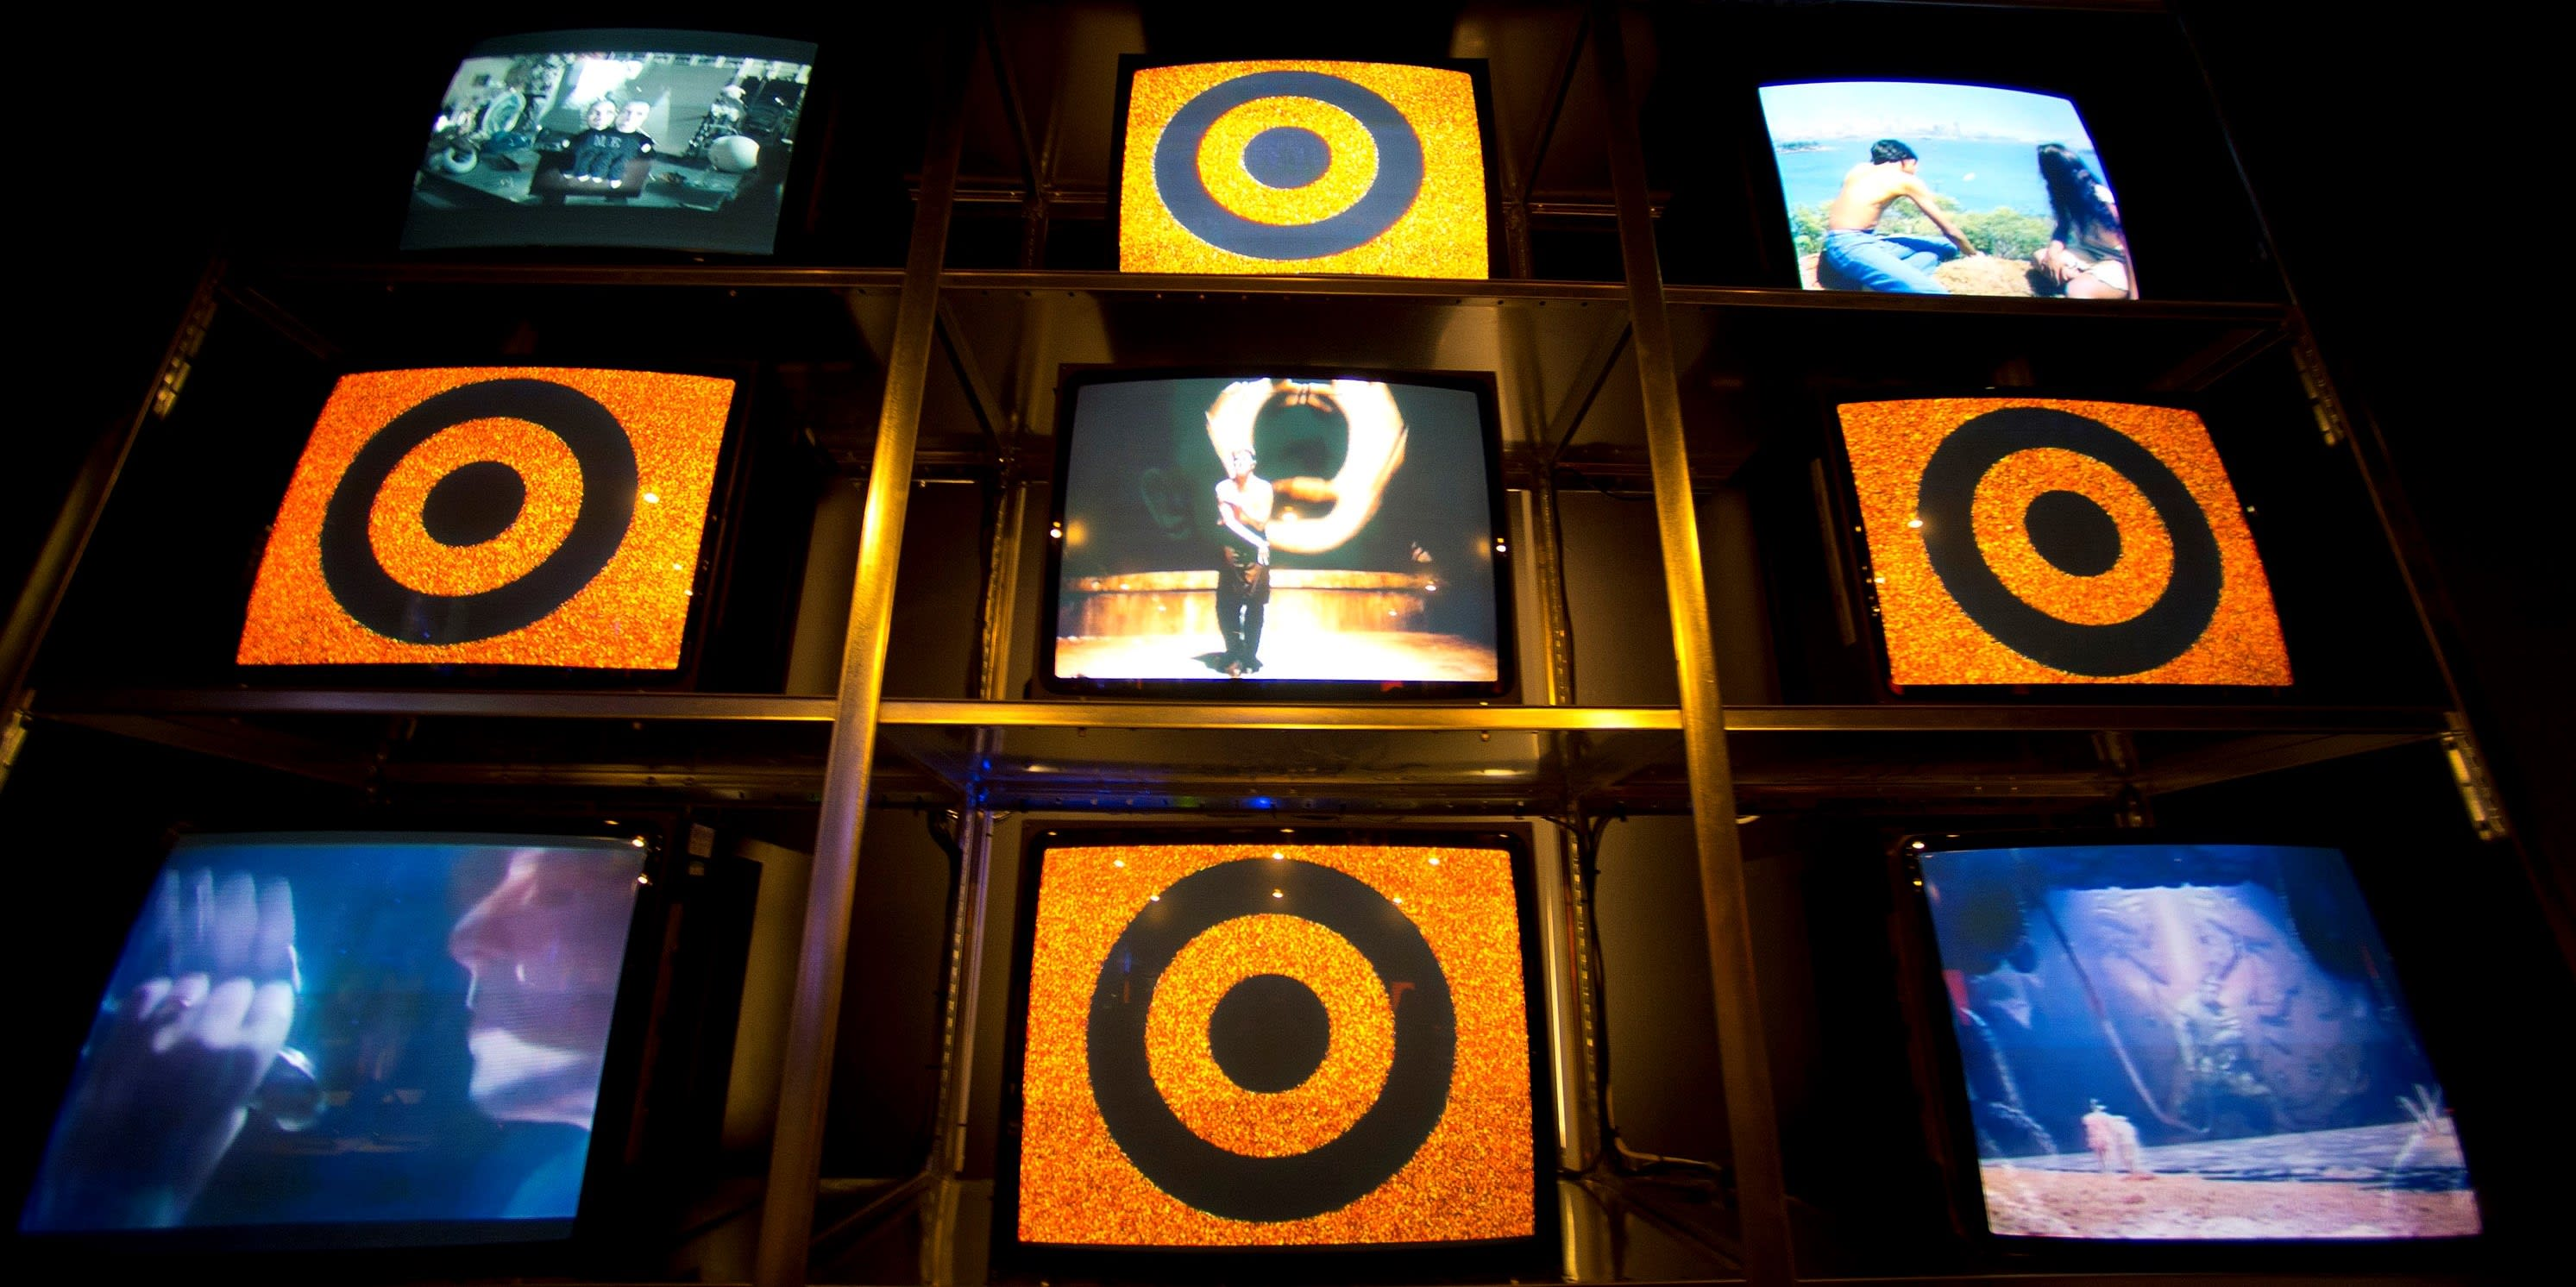 A television display plays David Bowie music videos at the 'David Bowie Is' exhibition at the Victoria & Albert Museum, 2013 (Ben A. Pruchnie/Getty Images)